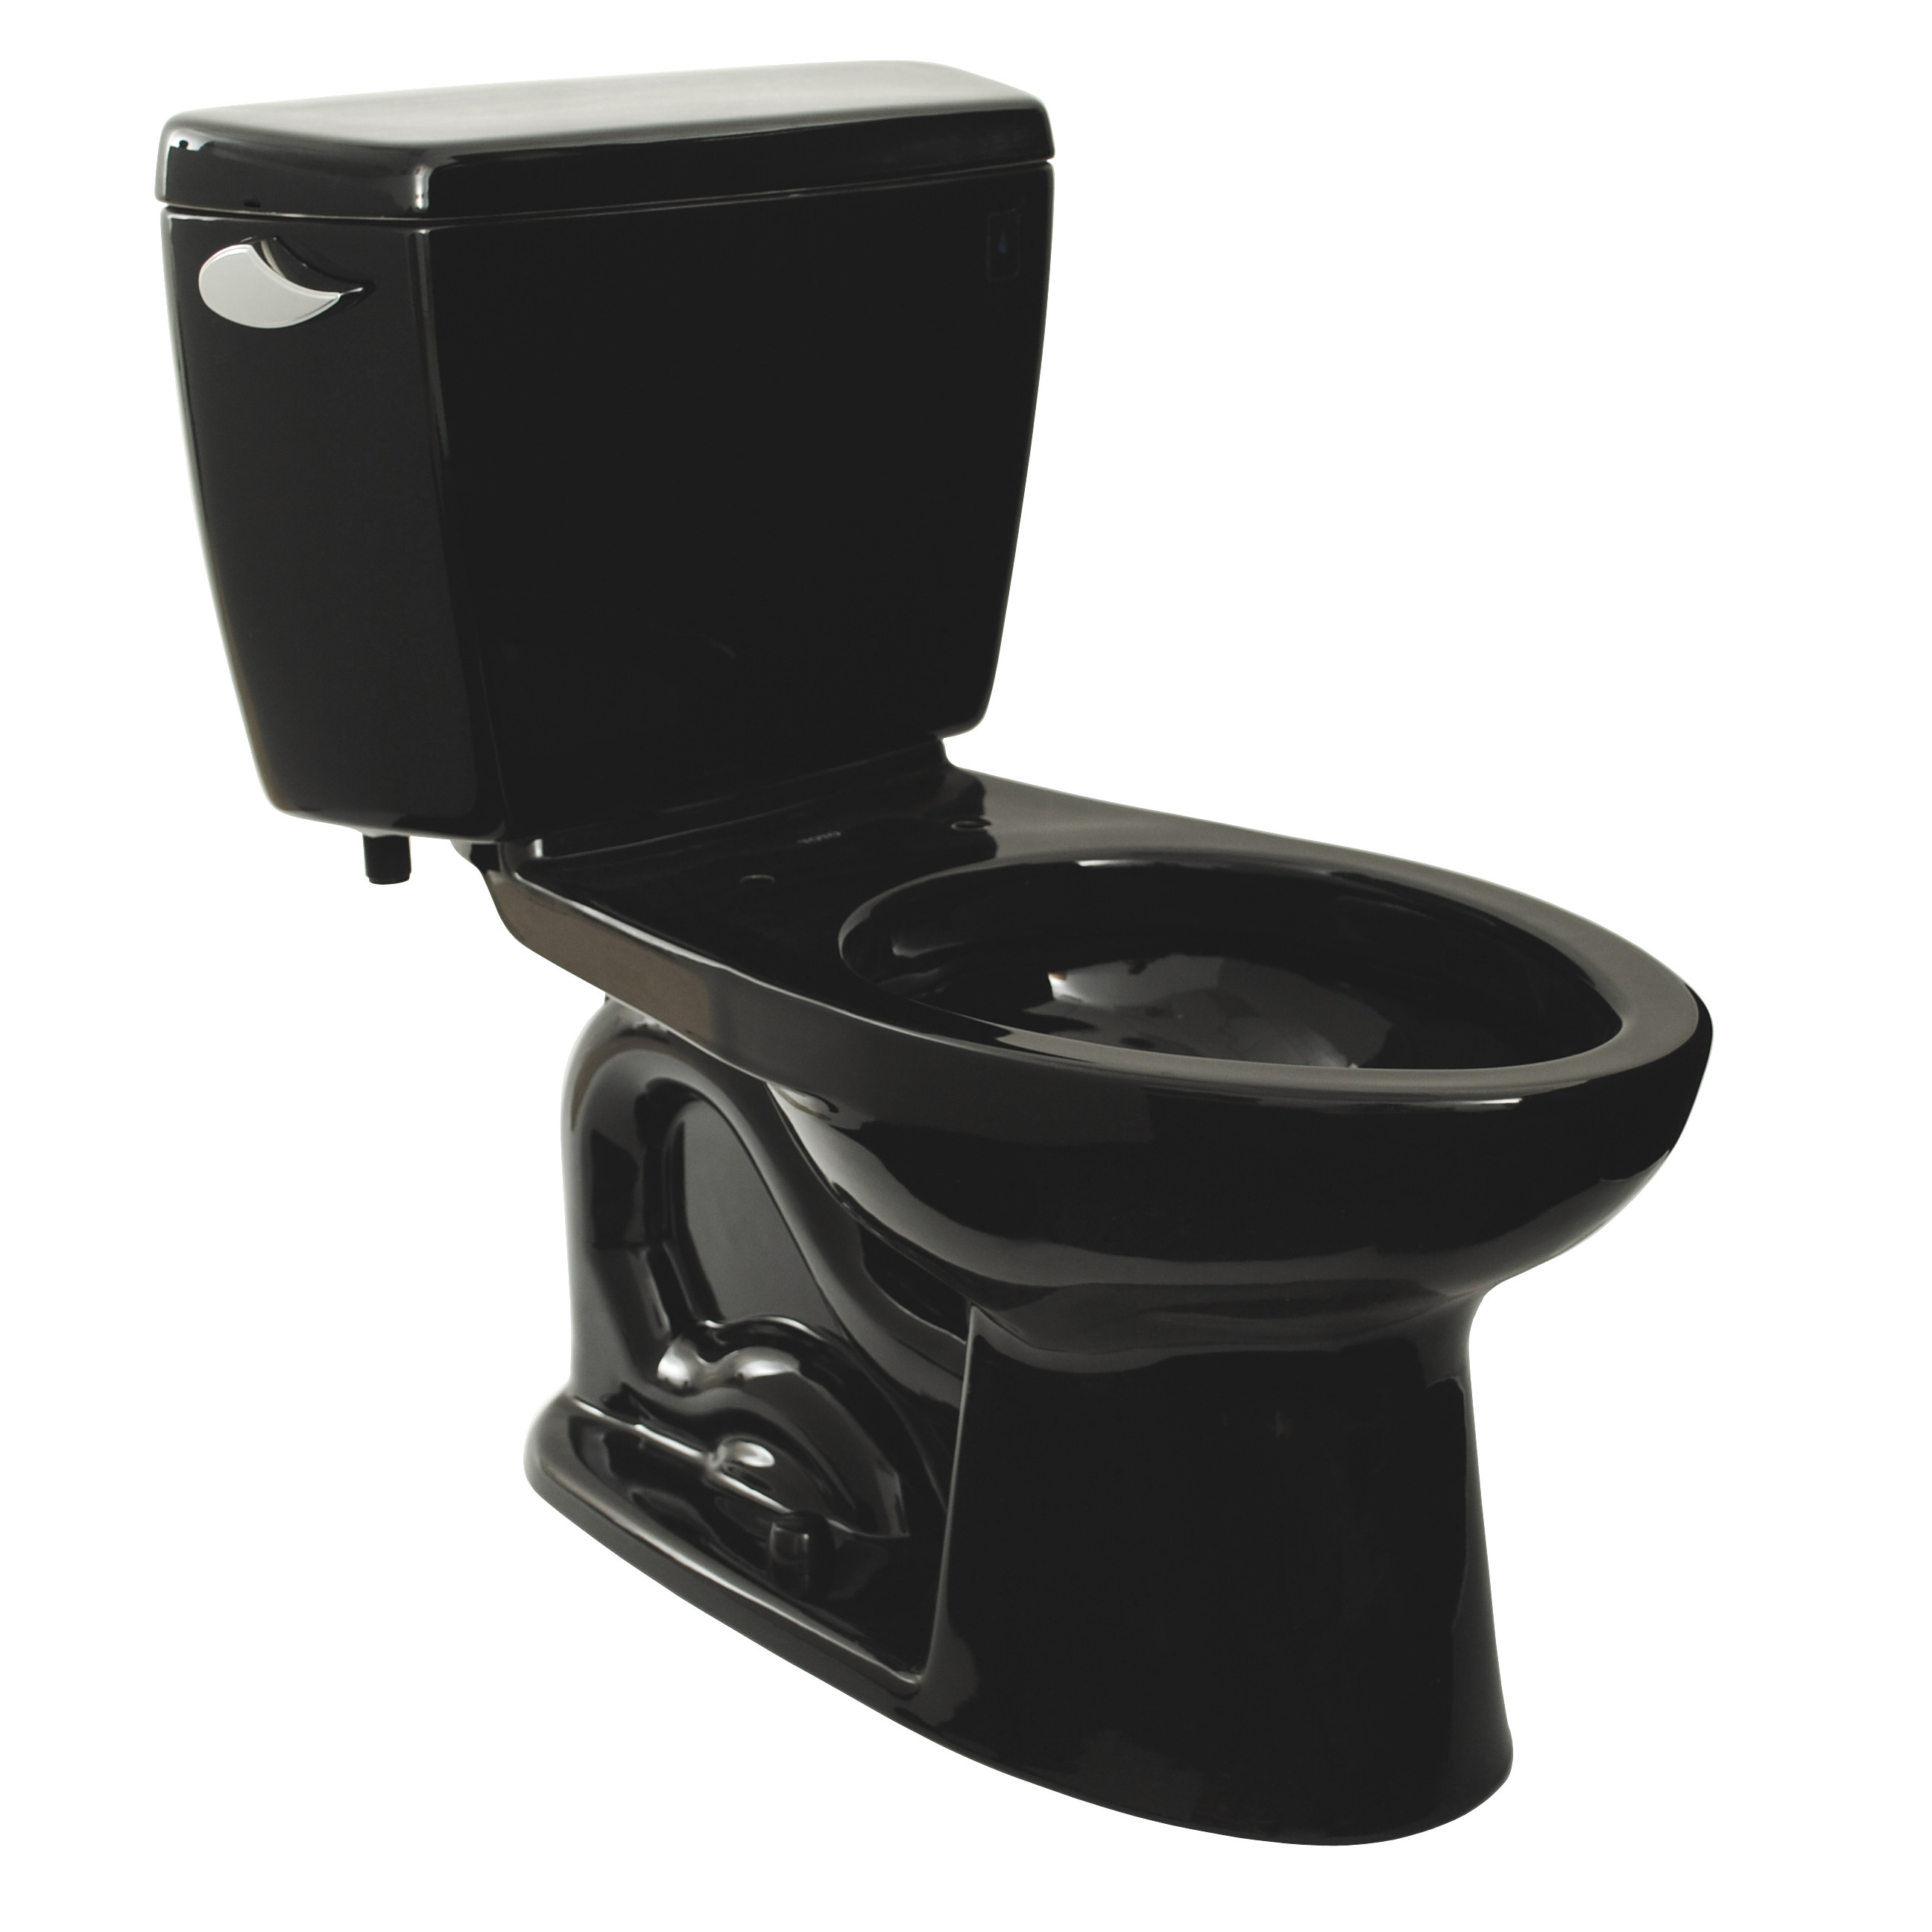 Have A Moder Toilet with Toto Toilet: Toto Toilet | Toto Toilet Home Depot | Where To Buy Toto Toilets